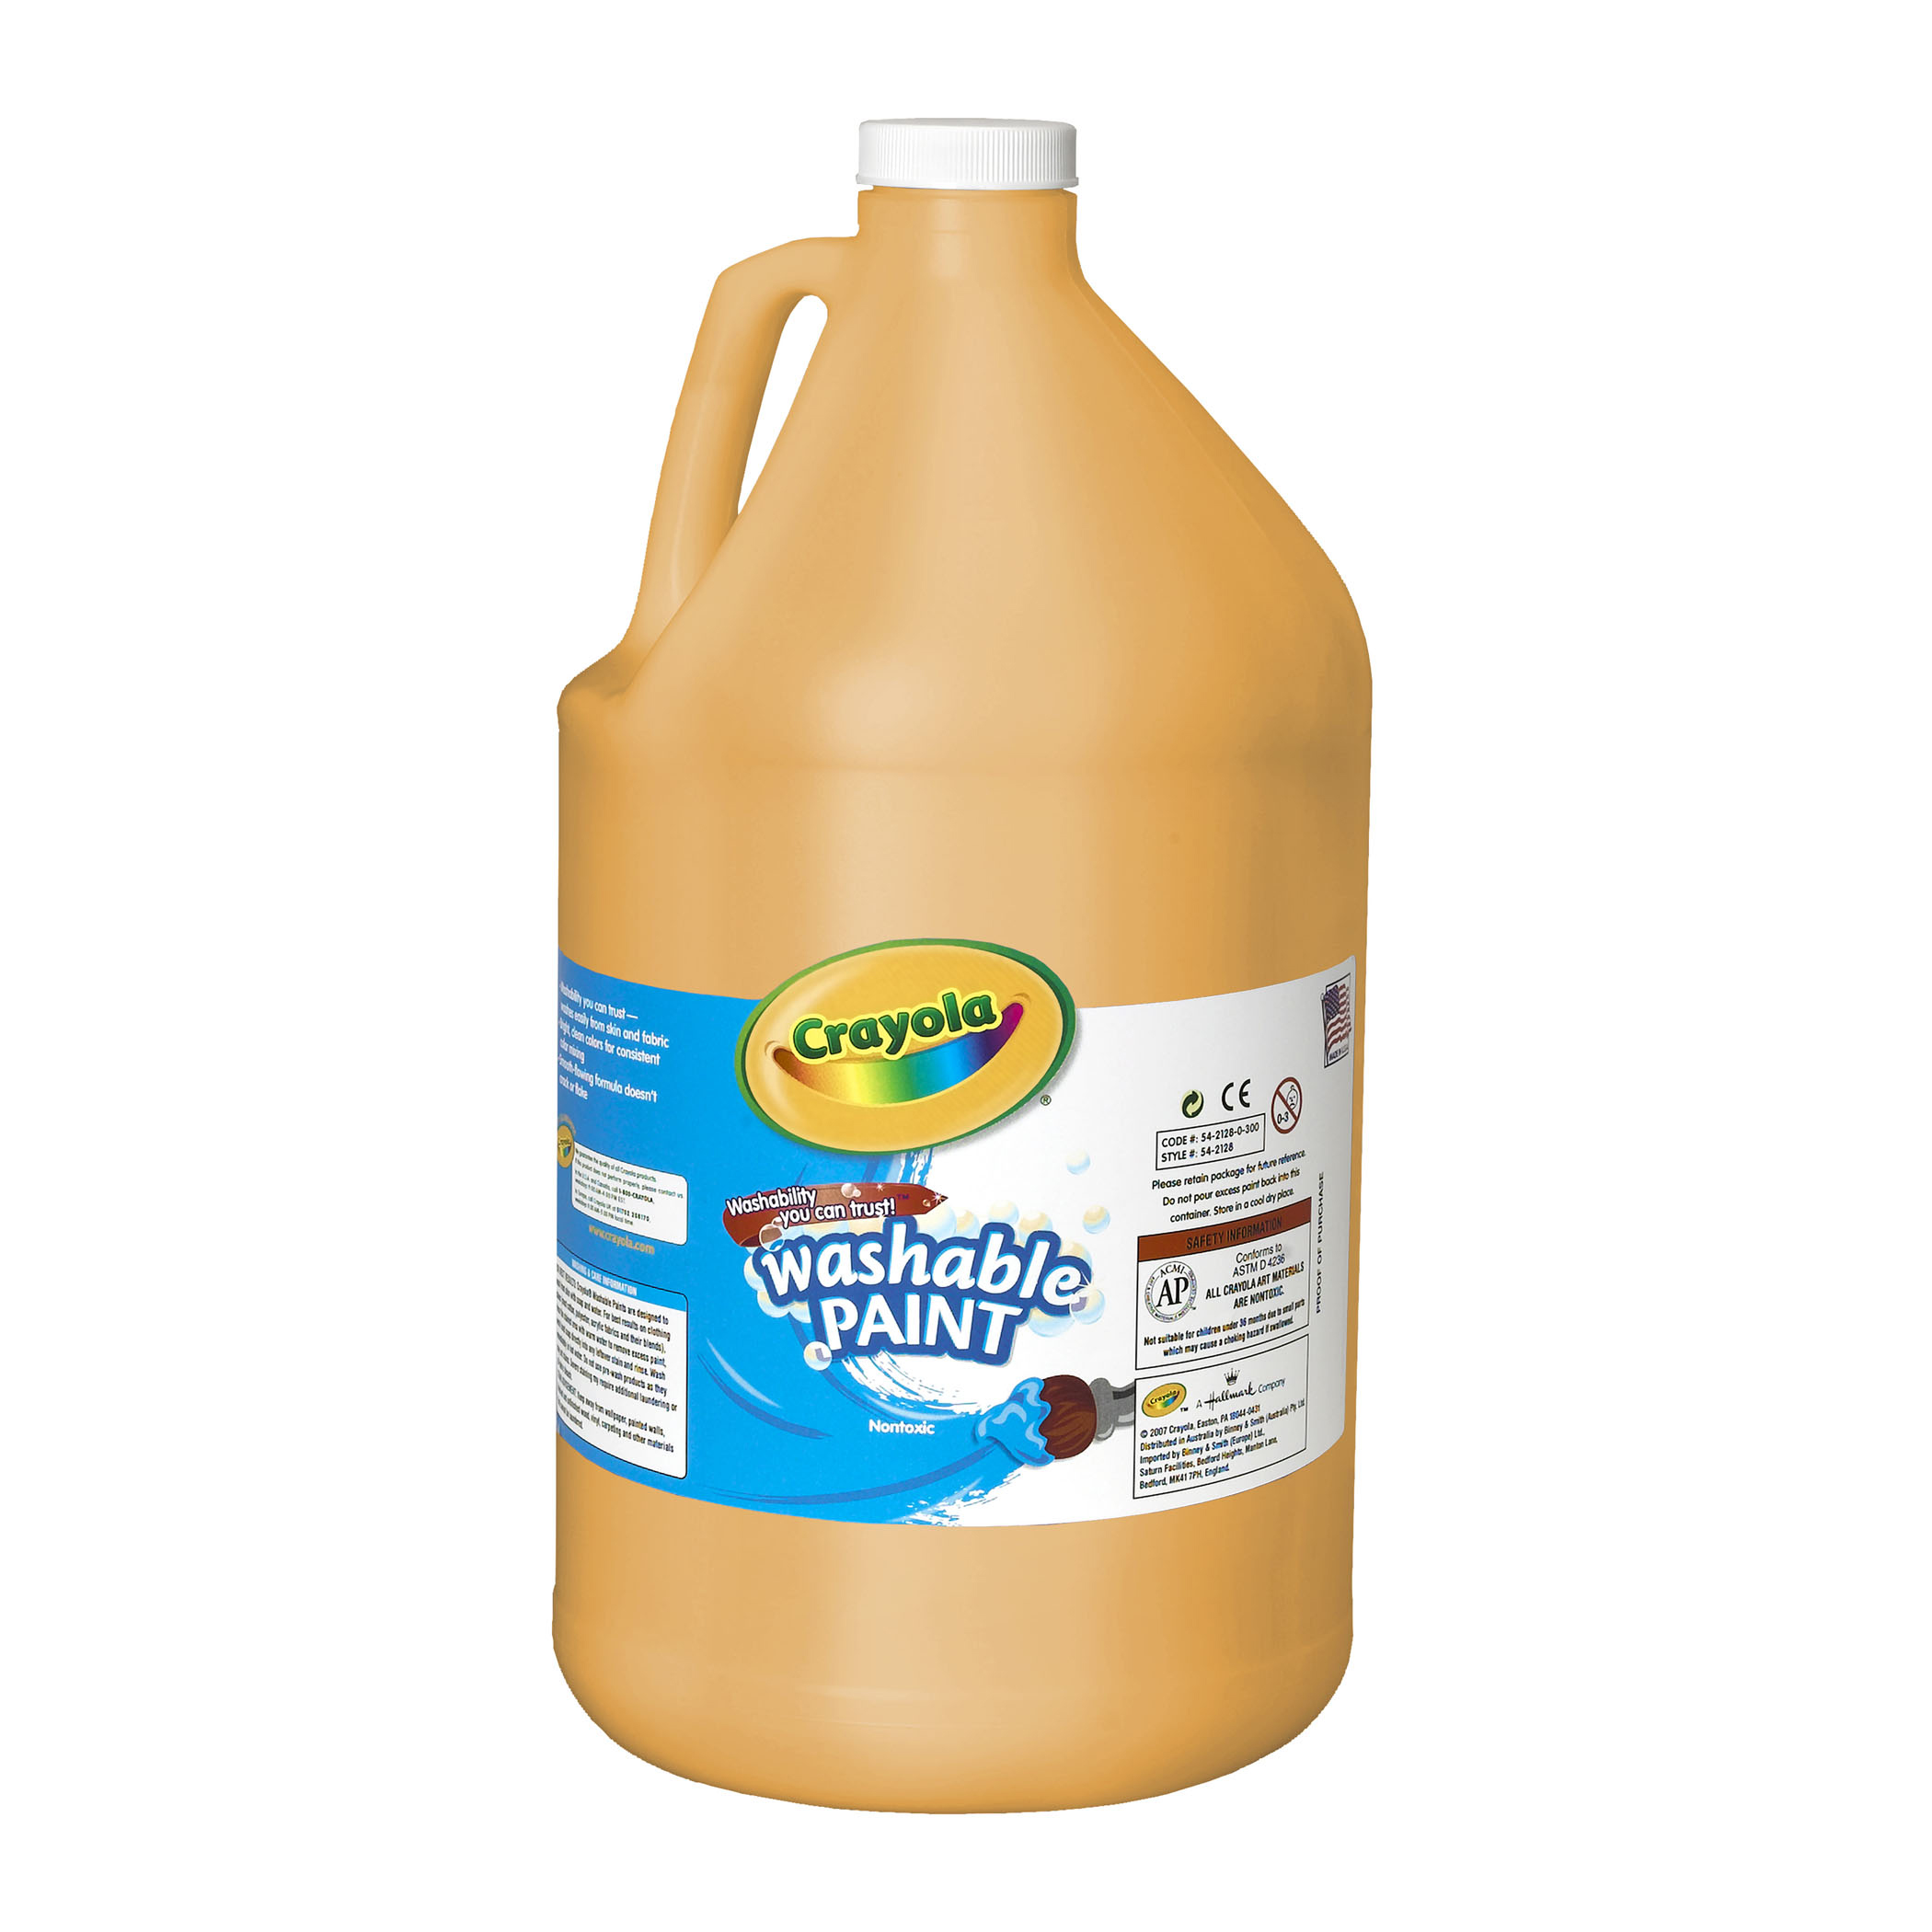 Crayola Washable Paint, Peach, Gallon